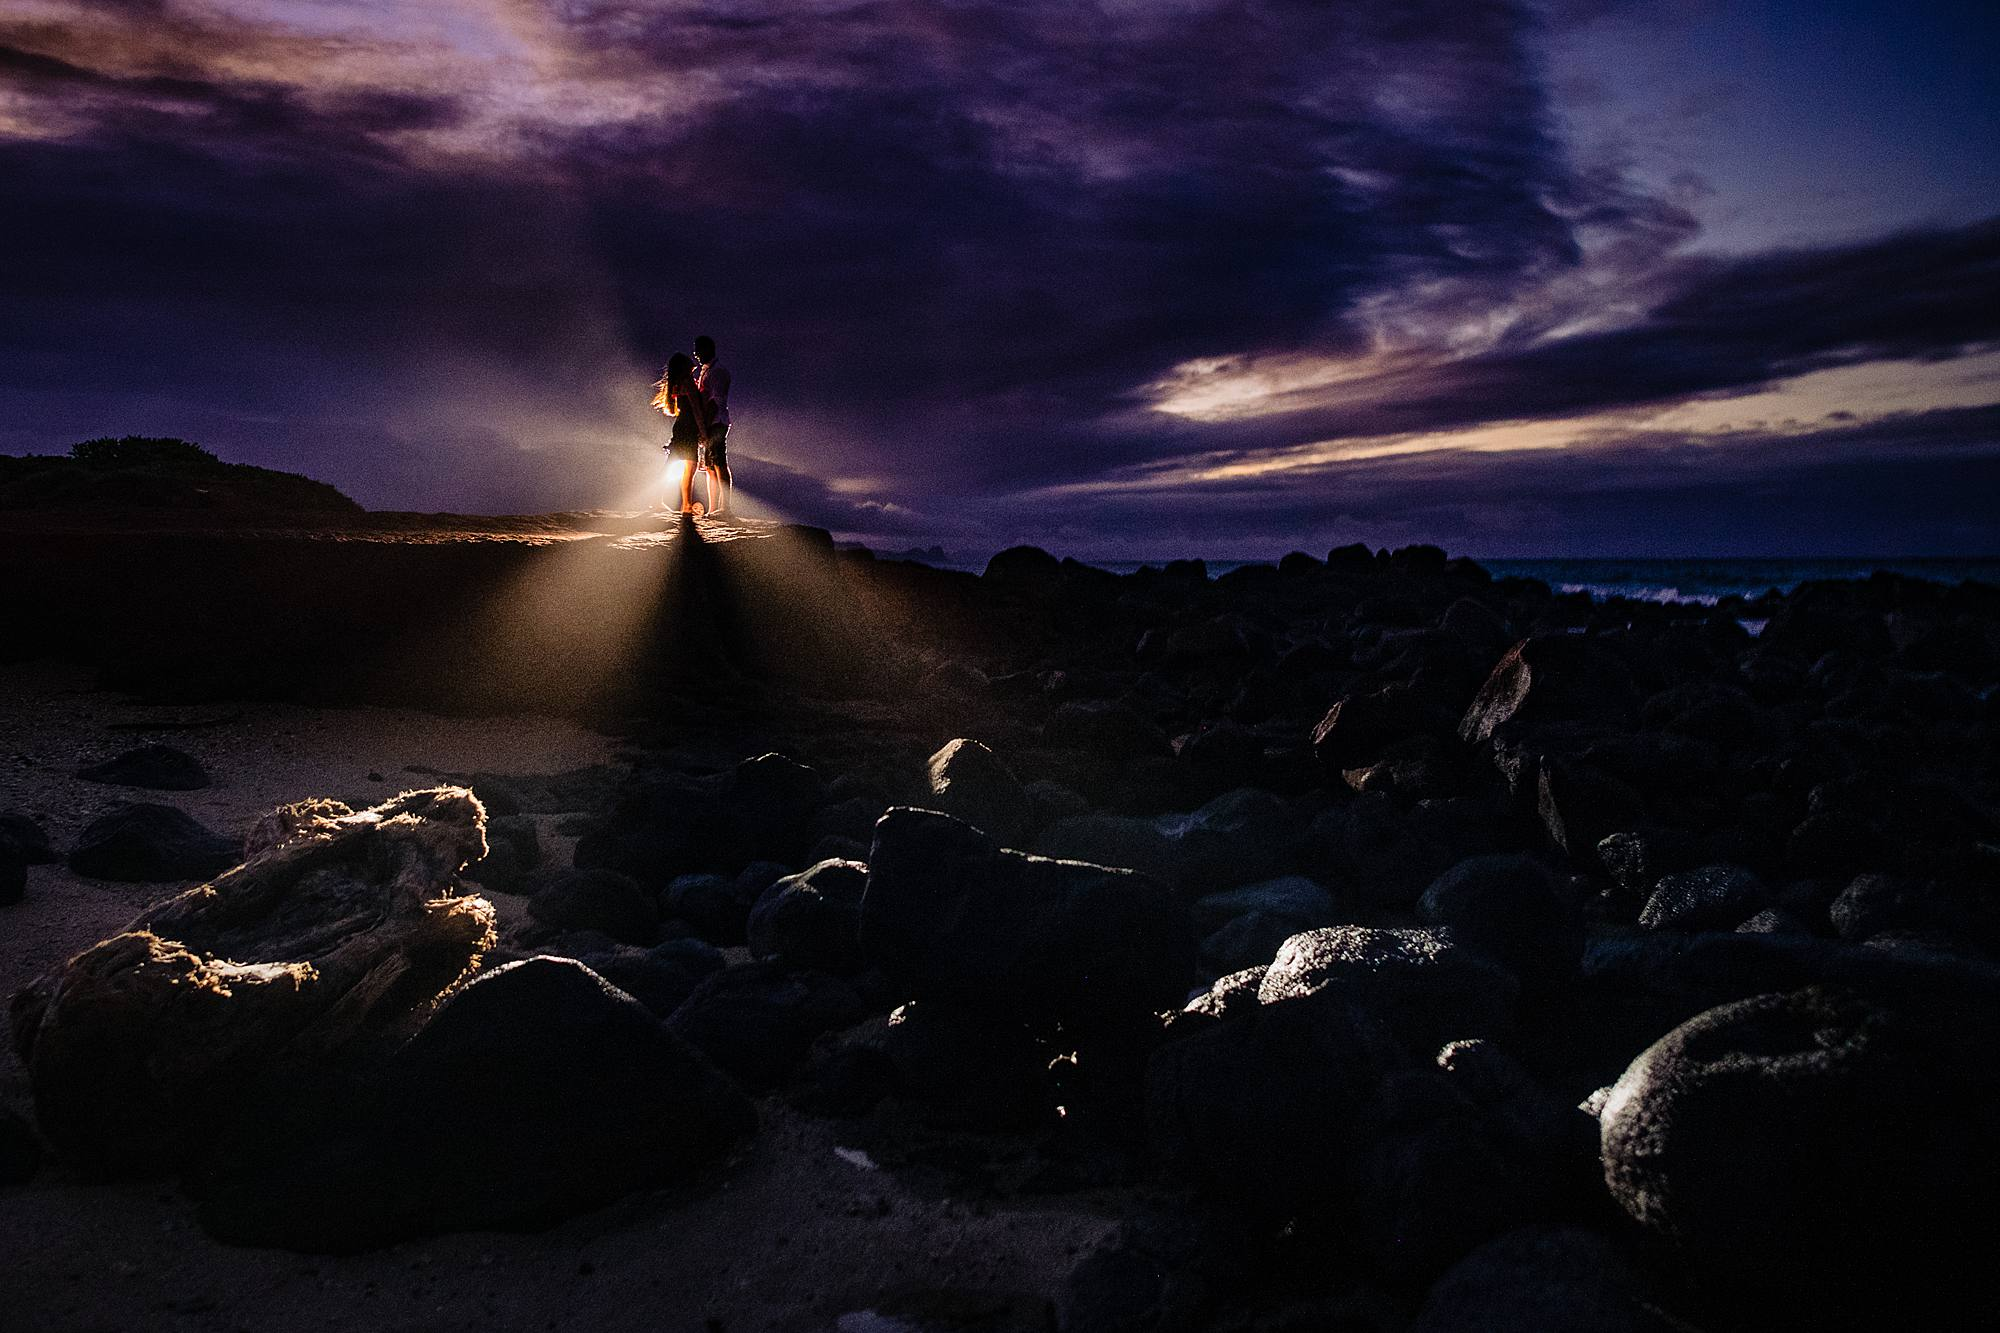 couple on a cliff in maui with epic lighting